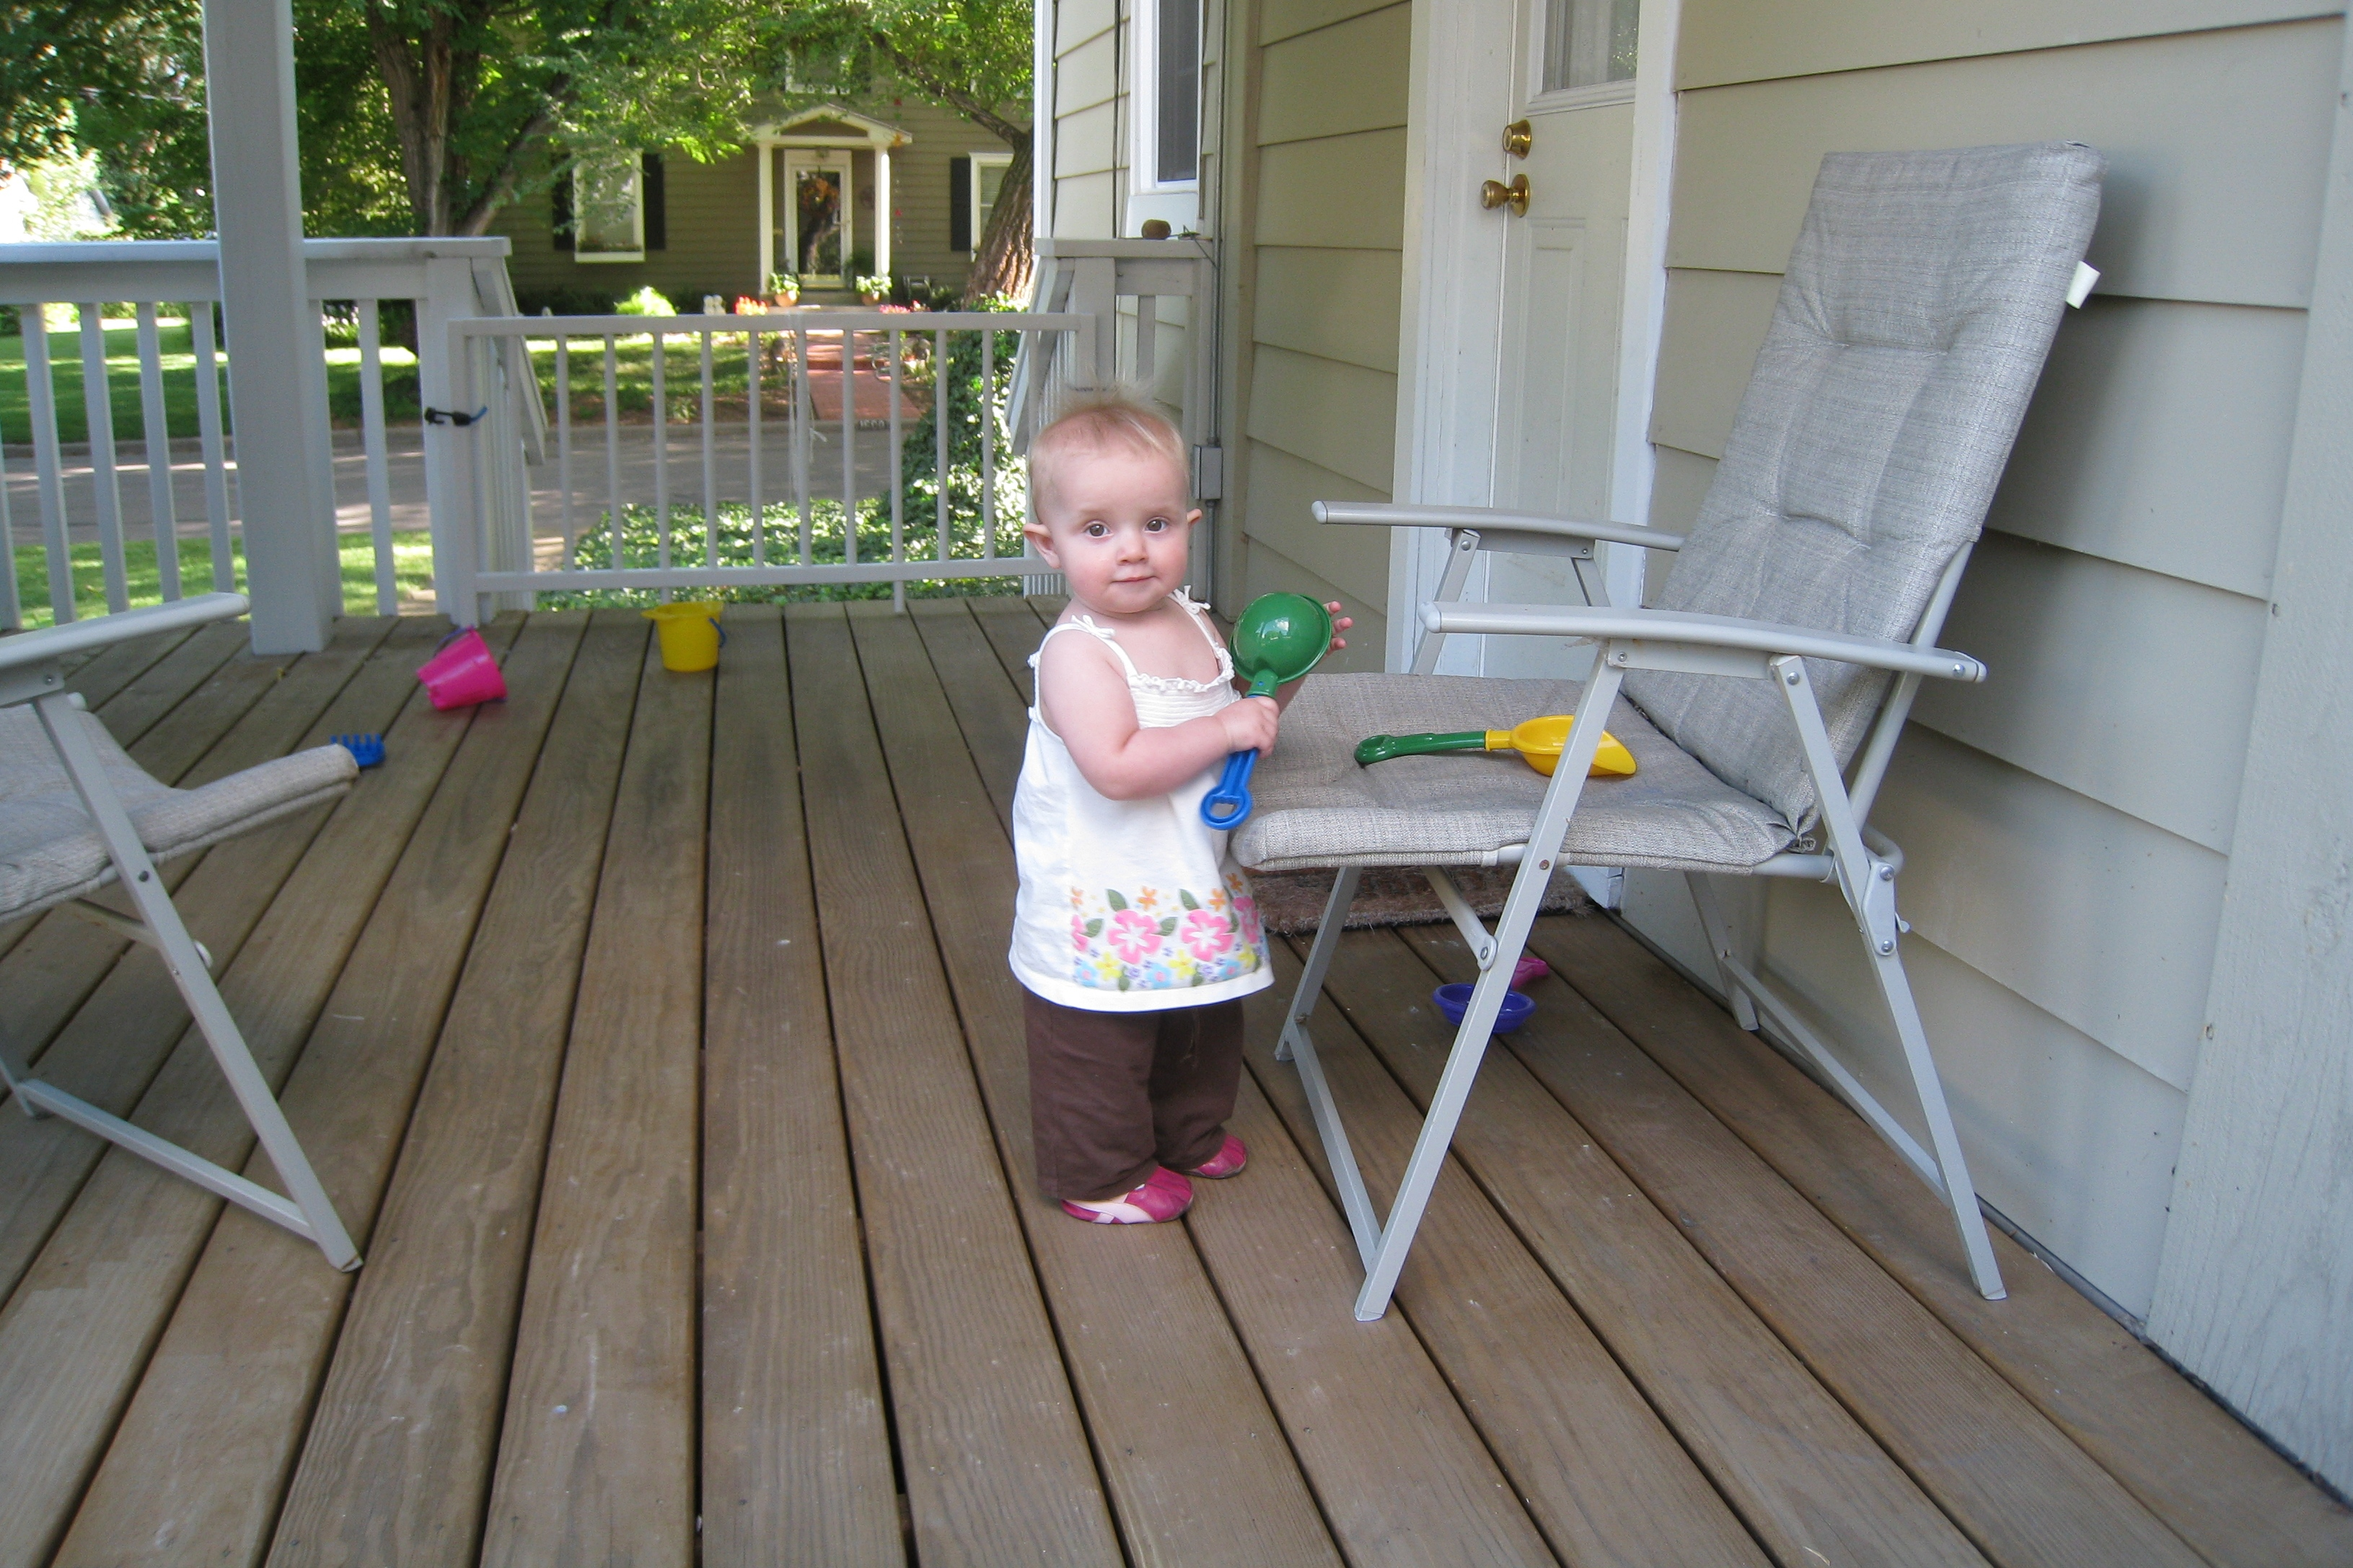 kivrin playing on the porch